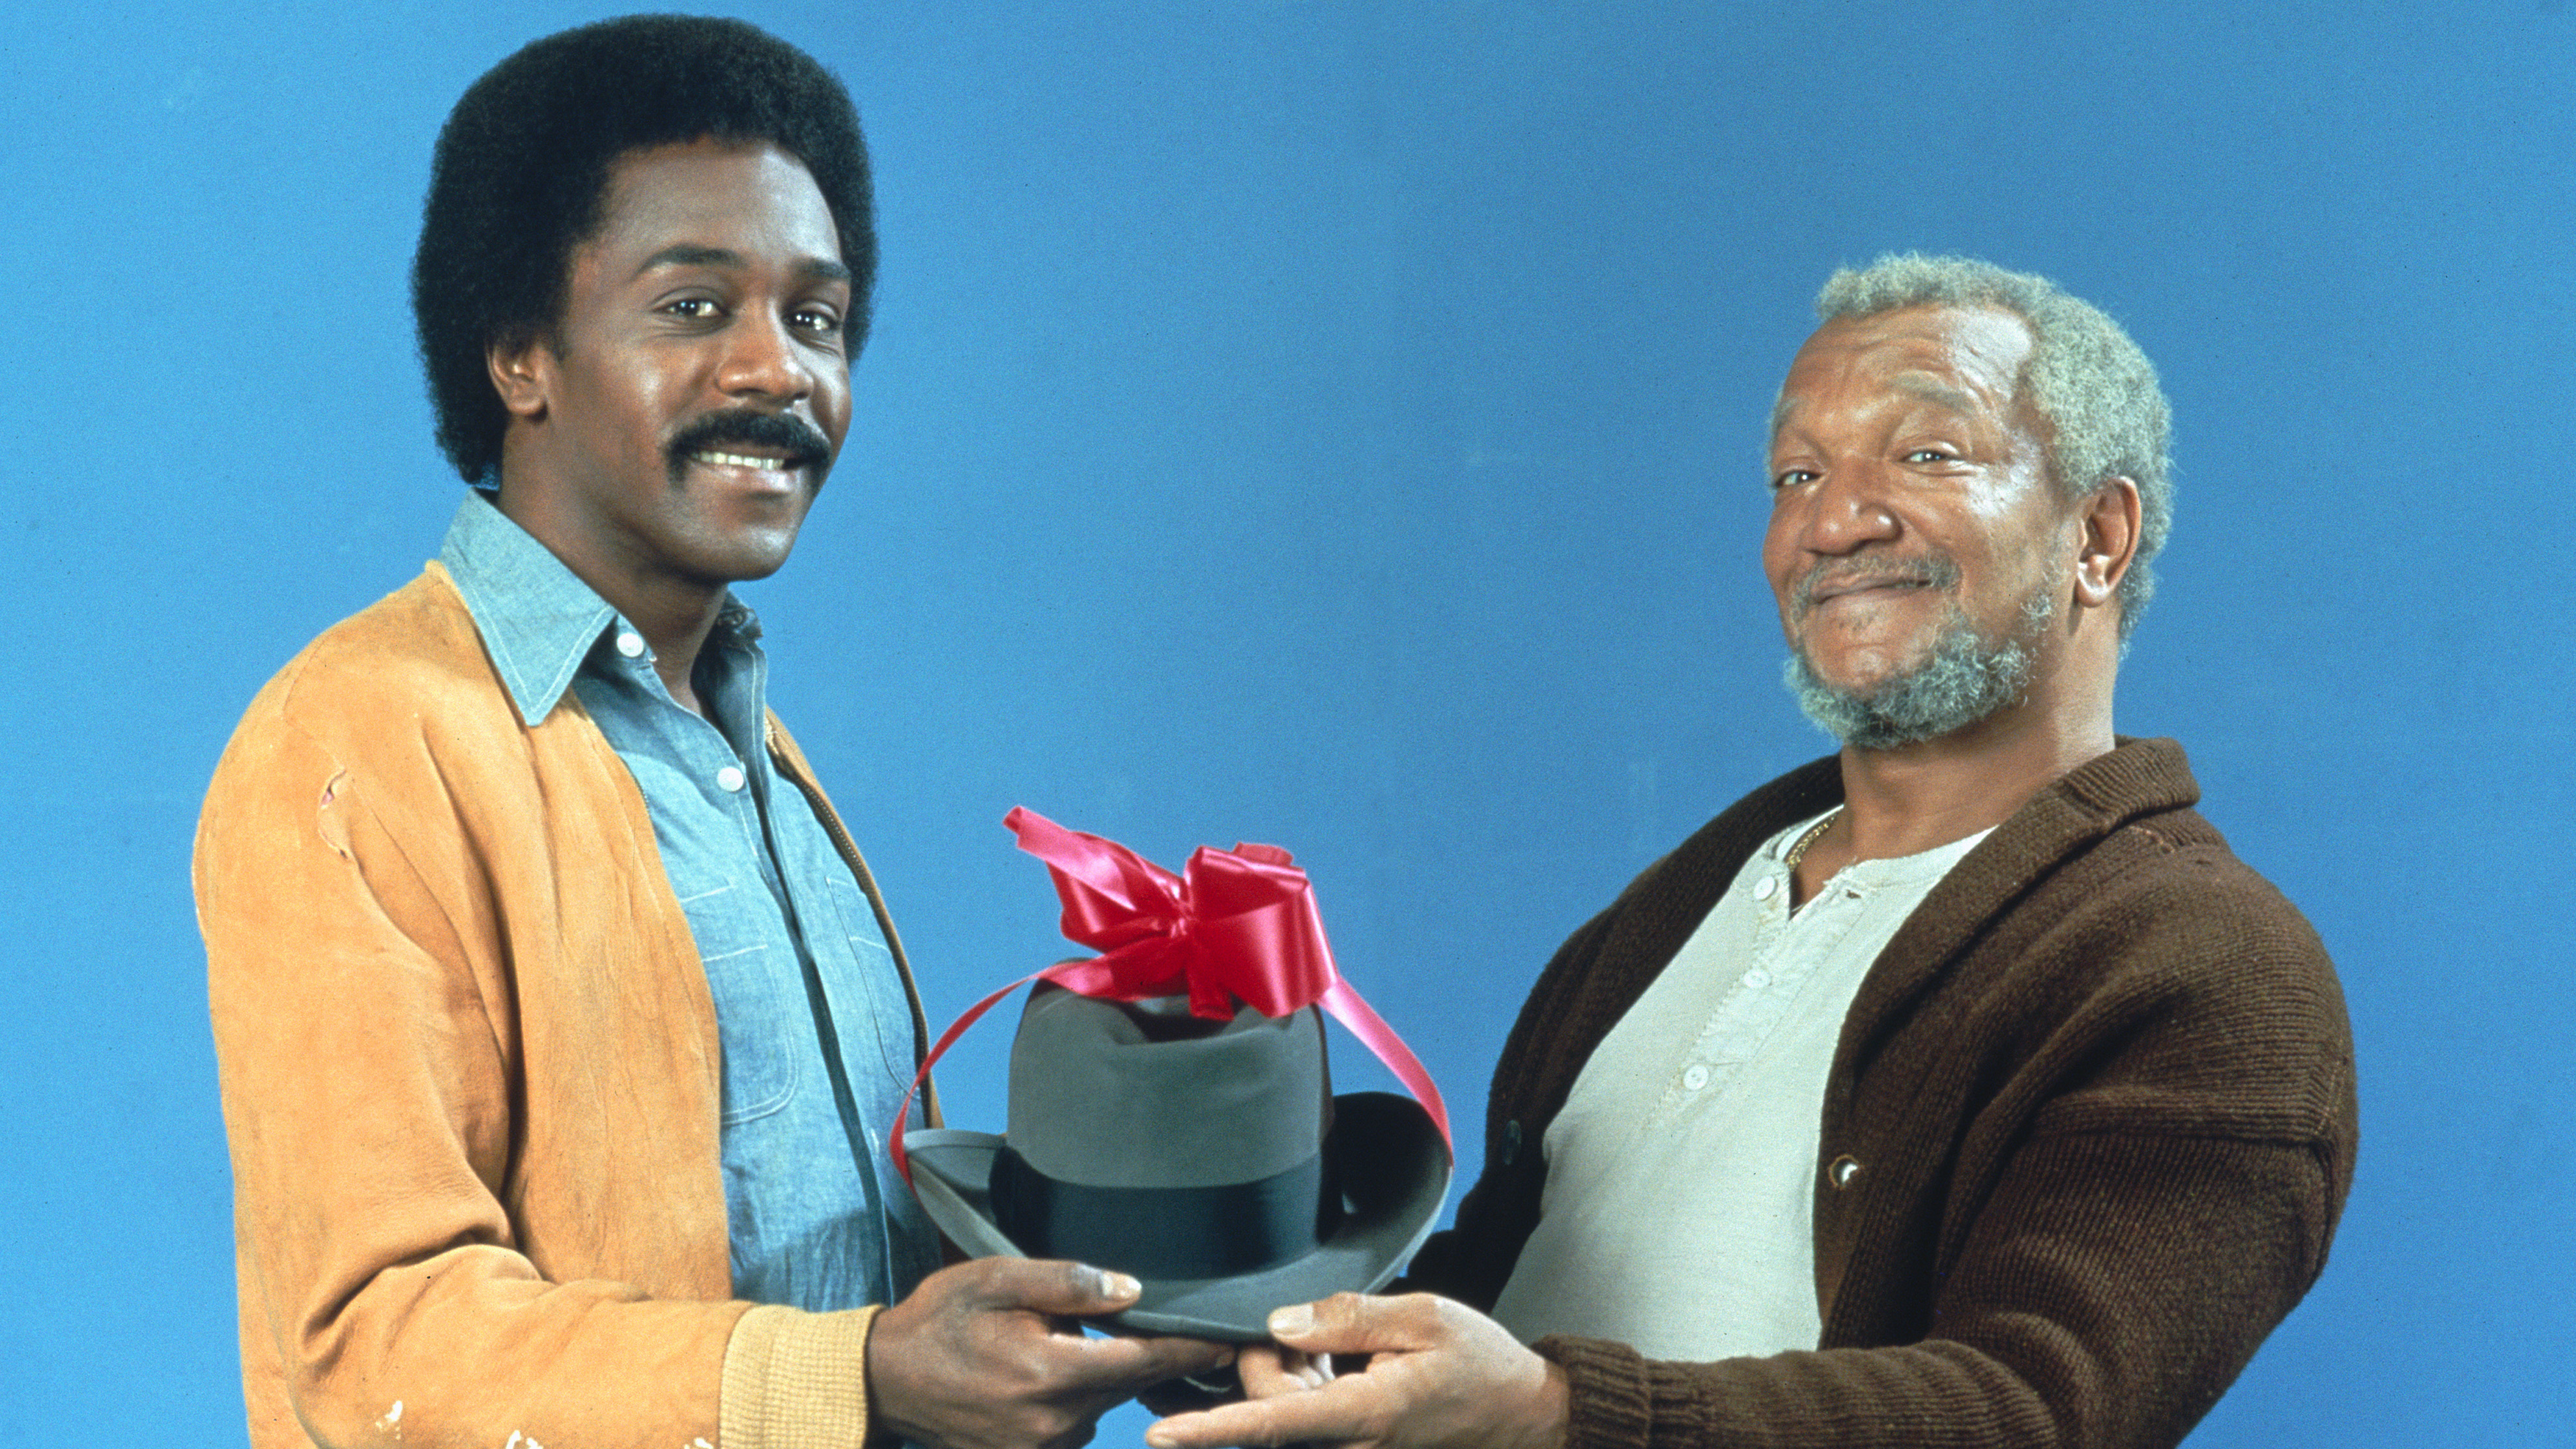 Sanford-and-Son-Trivia-question6-image